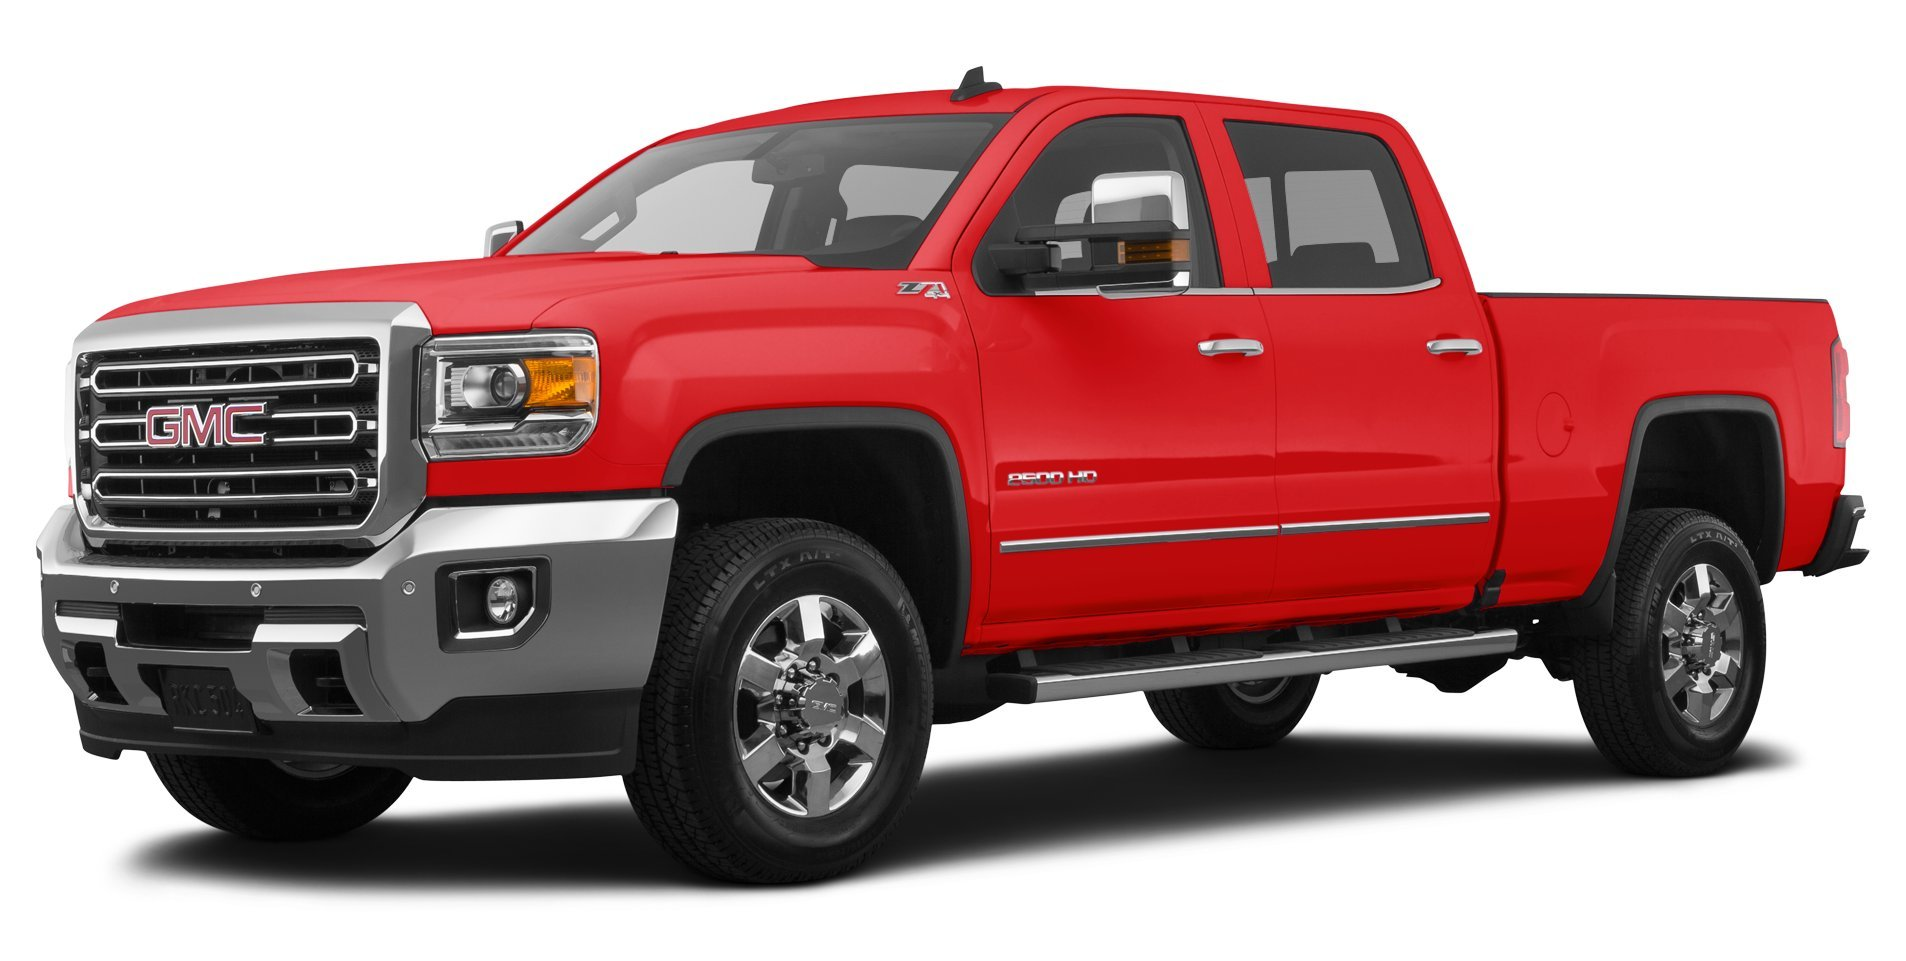 2017 gmc sierra 2500 hd reviews images and. Black Bedroom Furniture Sets. Home Design Ideas